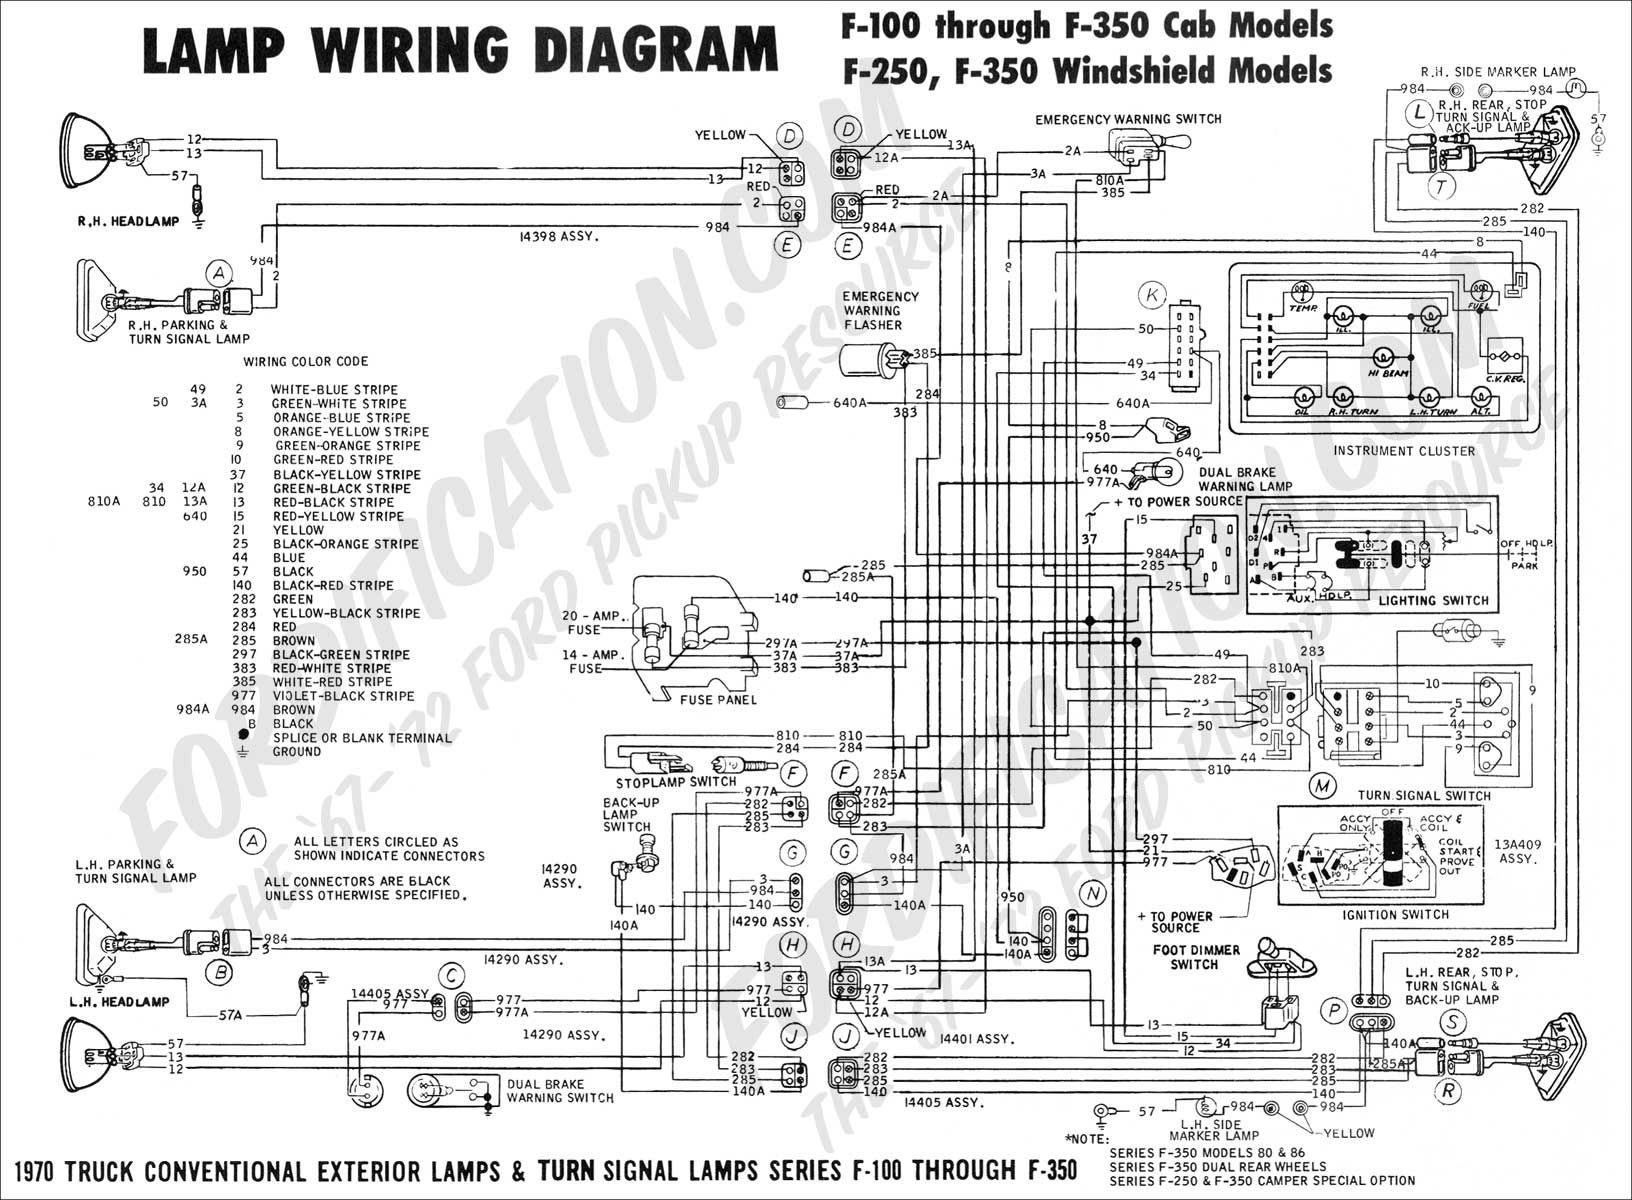 84 C10 Wiring Diagram | Wiring Diagram  C Wiring Diagram on 84 corvette wiring diagram, 84 k2500 wiring diagram, 84 camaro wiring diagram, 84 caprice wiring diagram, 84 k5 blazer wiring diagram, 84 cavalier wiring diagram, 84 k20 wiring diagram,